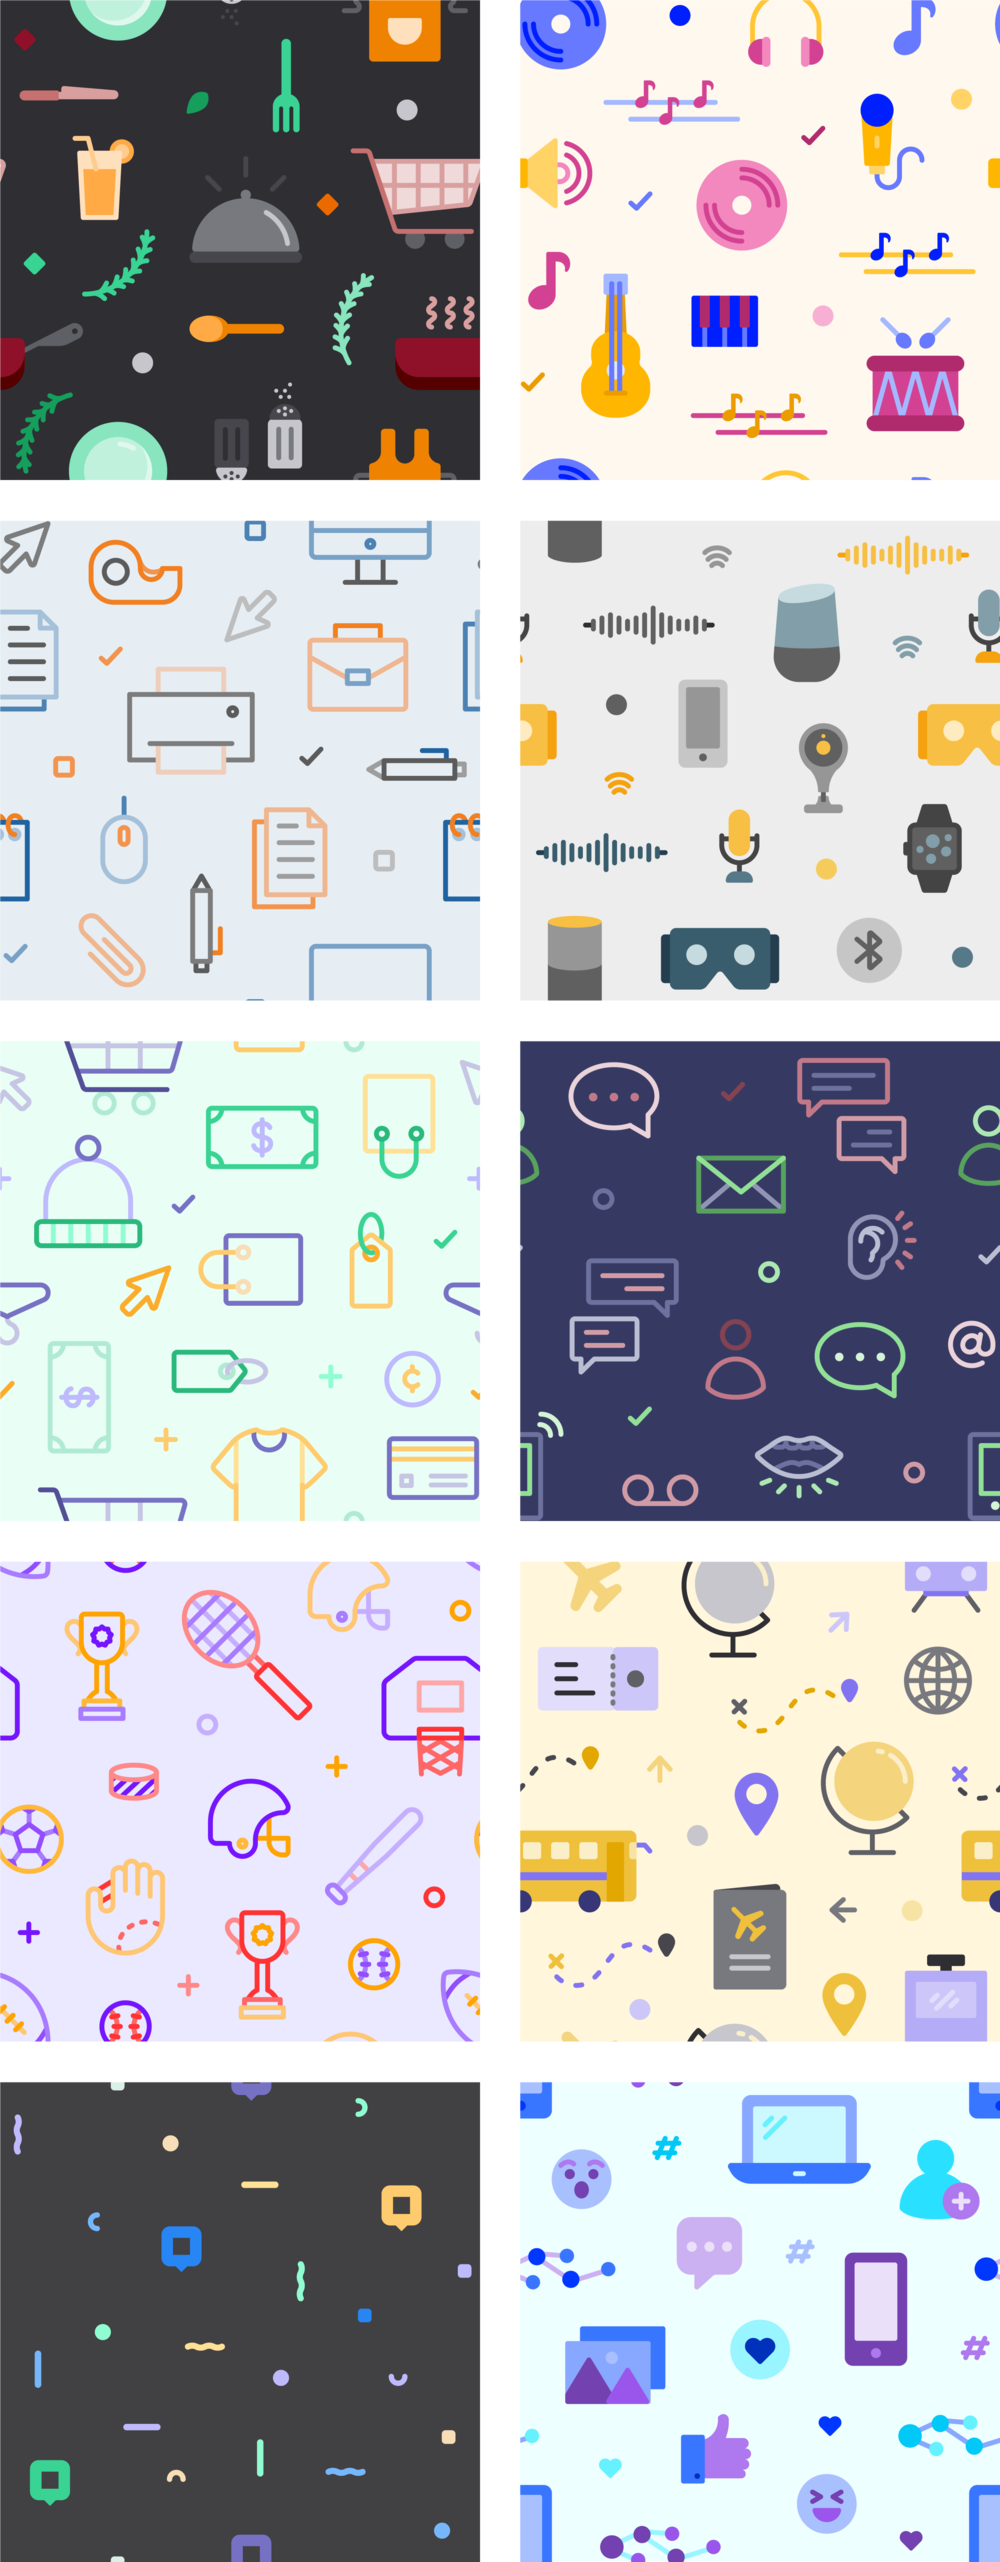 patterns_all_3-30-30.png